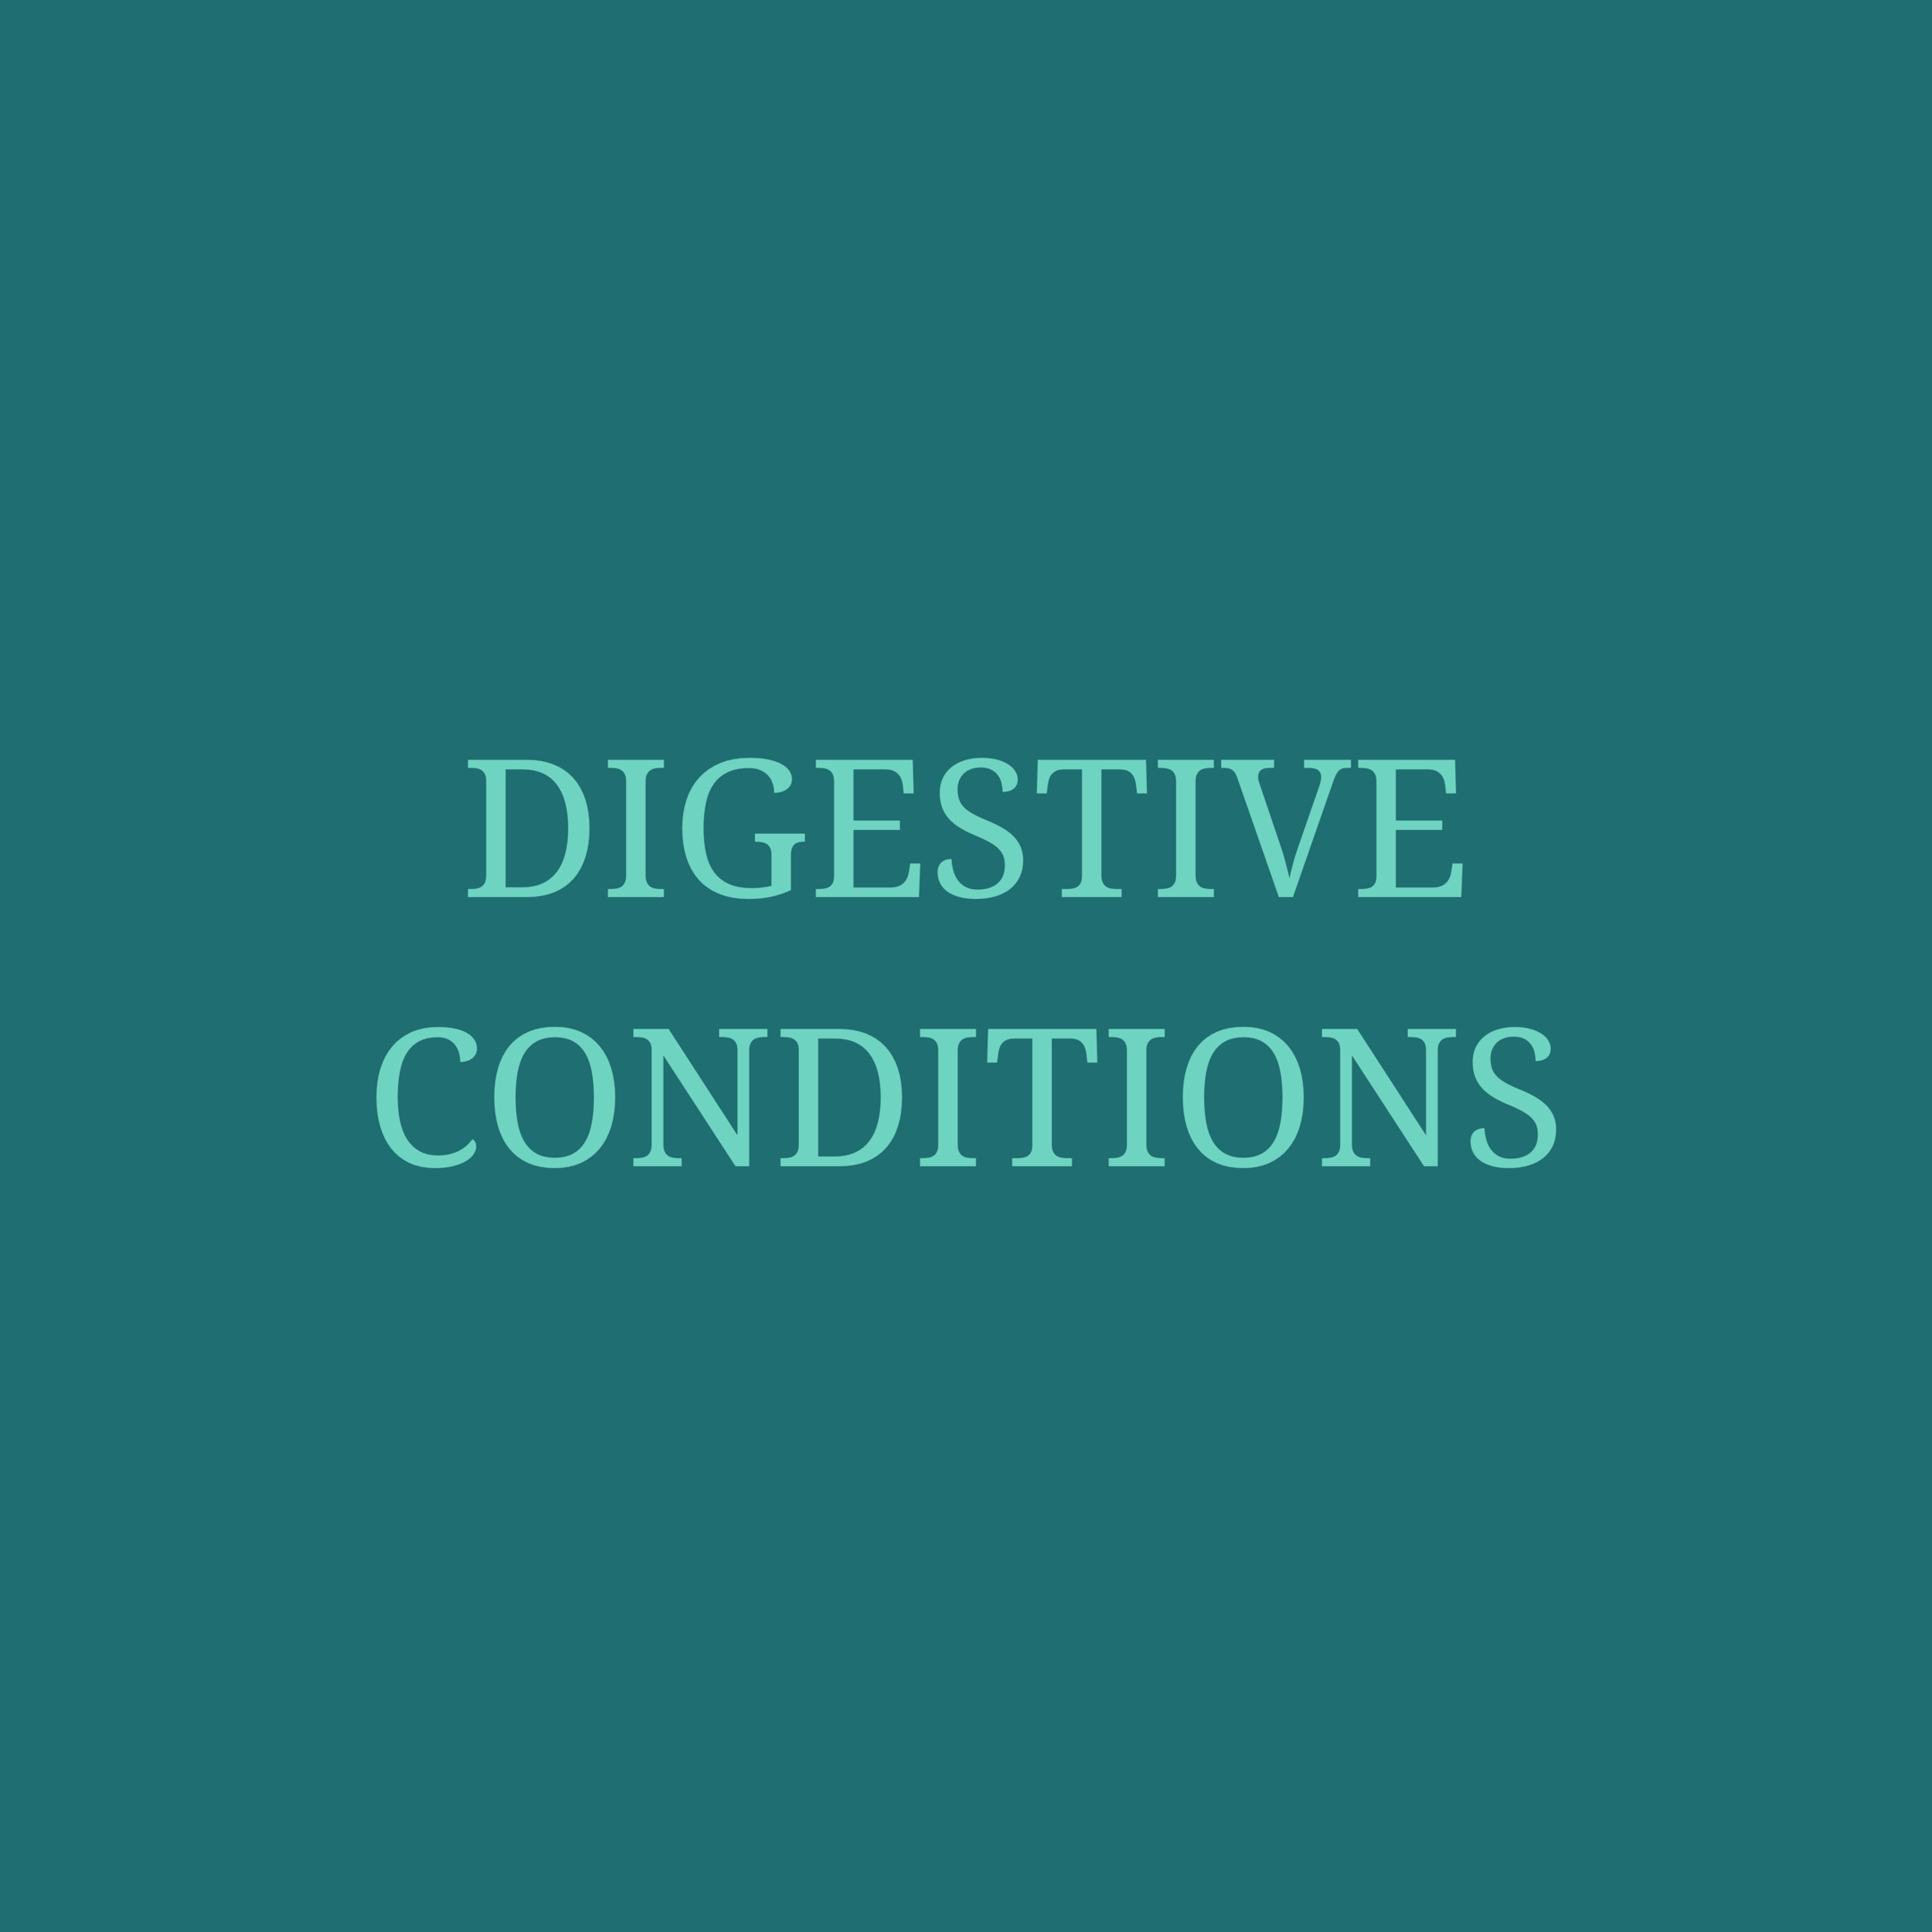 digestive1.png